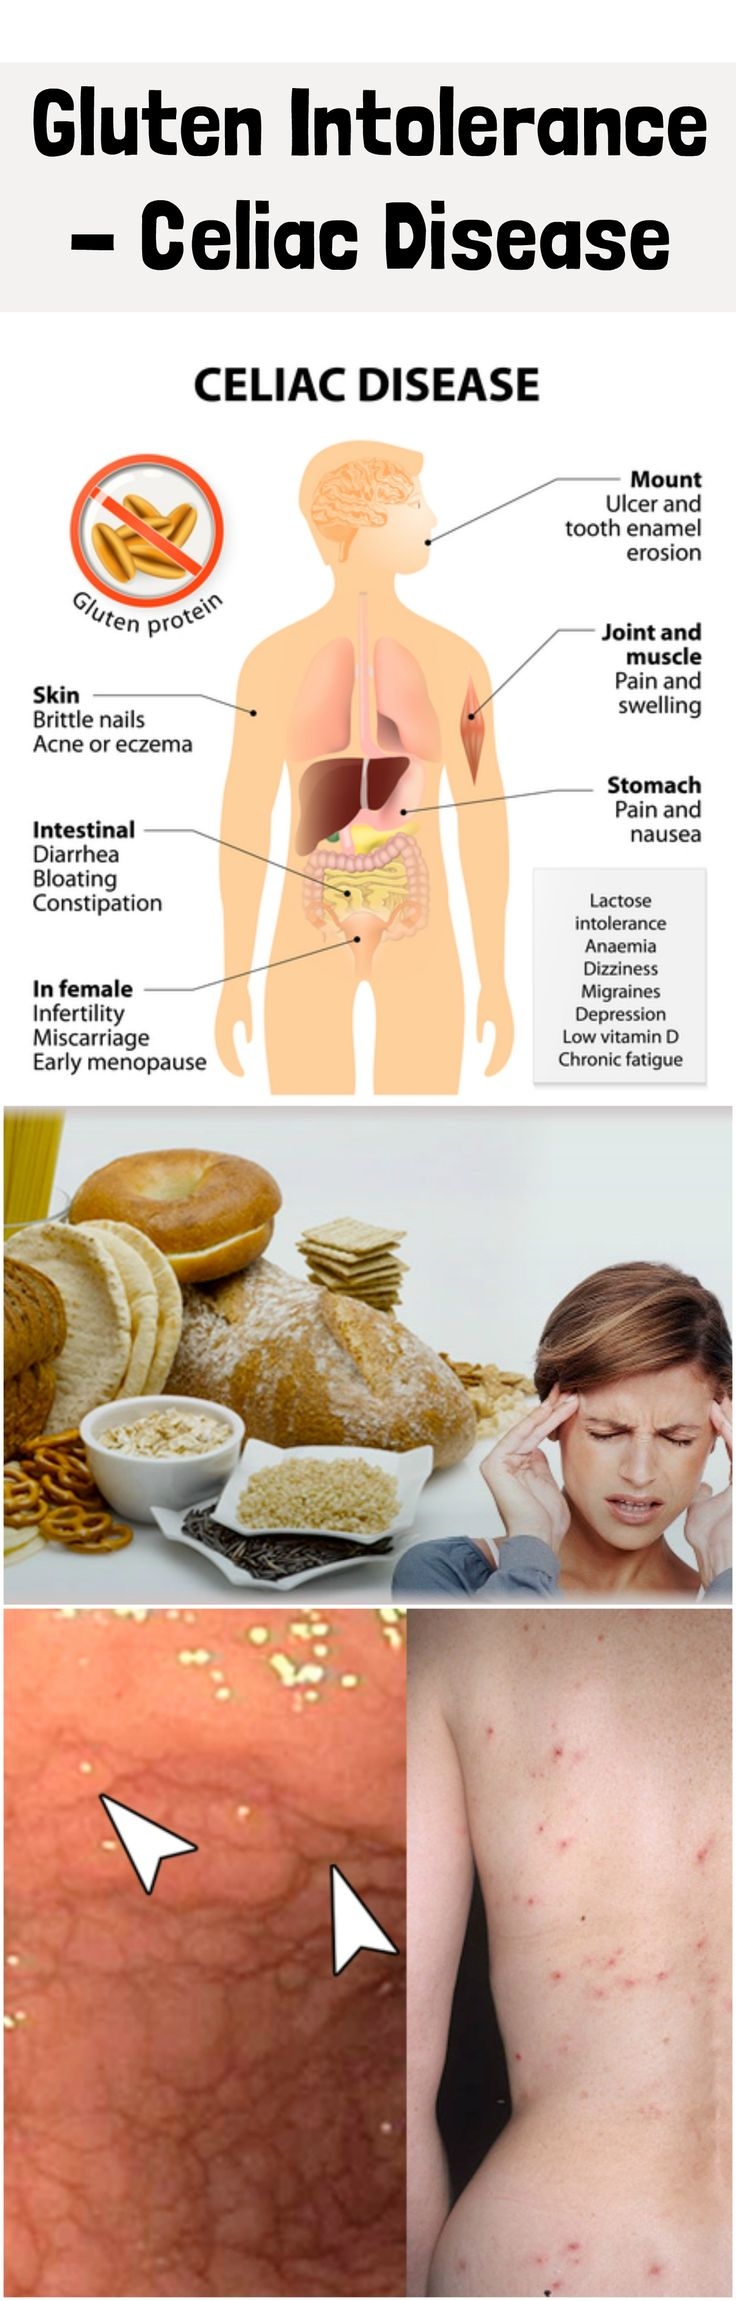 Gluten intolerance belongs to autoimmune disease and is called celiac disease. Gluten is a type of protein that is found in some cereals (wheat, grazing, and rice). As with all other autoimmune diseases, and in this case, in those who have expressed intolerance to gluten, there is a fault in the immune system reaction. #gluten #intolerance #celiac #disease #treatment #symptoms